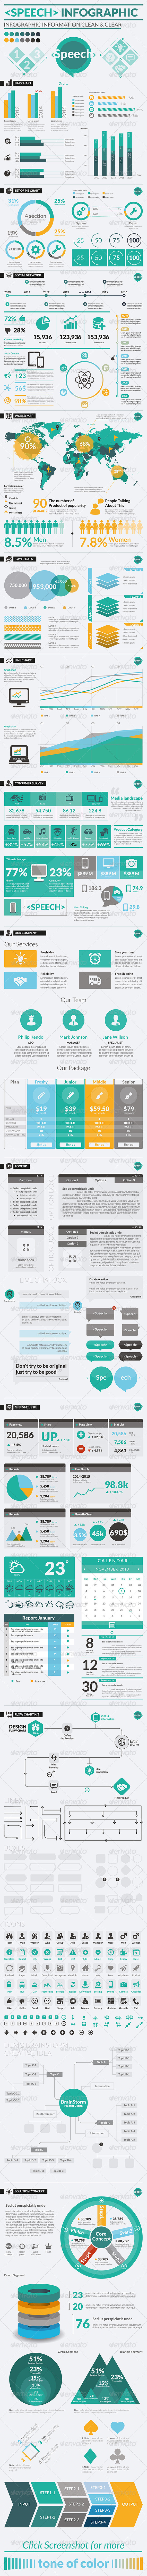 GraphicRiver Speech Infographic 6755476